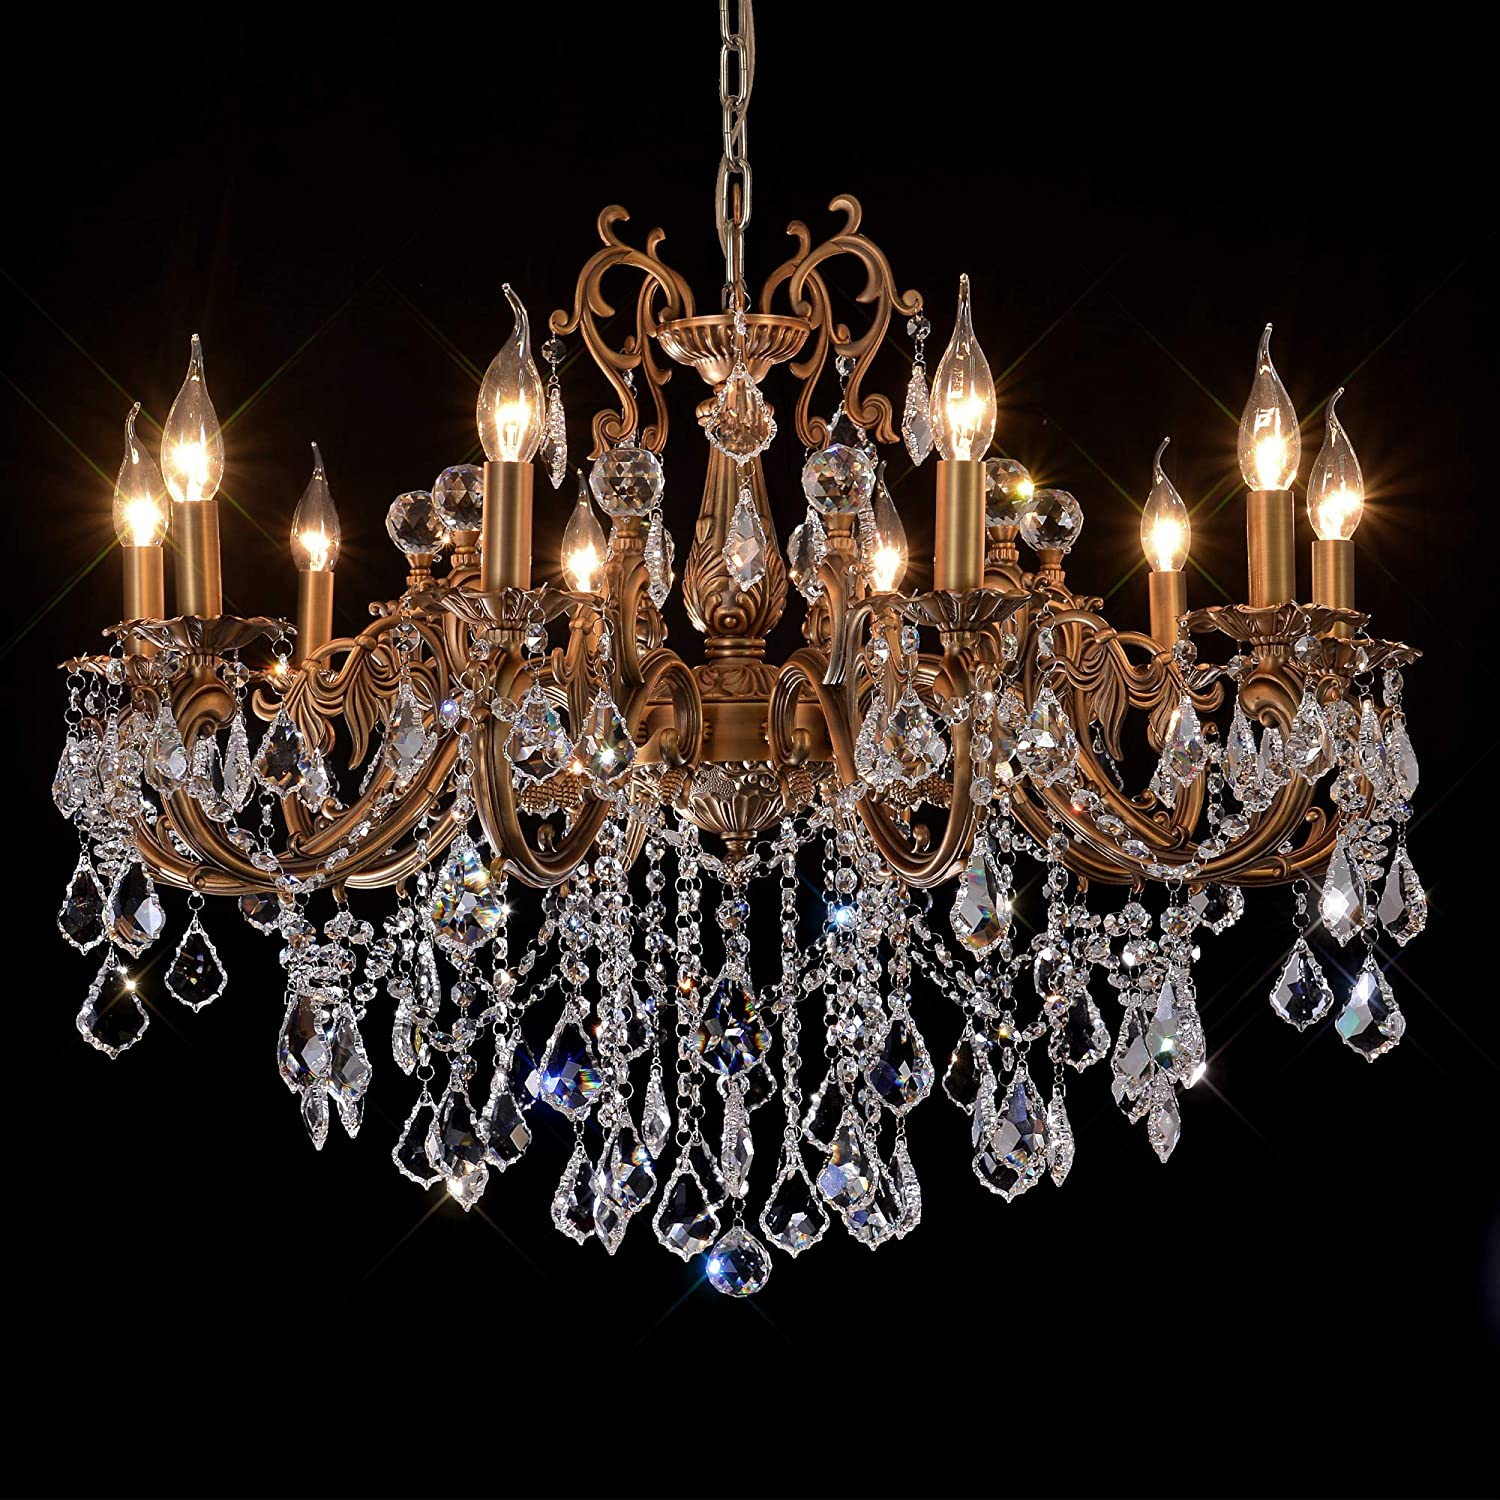 MEEROSEE Crystal Chandeliers Contemporary Chandelier Island Lighting 10 Lights Candle Pendant Ceiling Light Fixture for Dining Room Living Room Kitchen Bedroom Hallway Entry D35.4